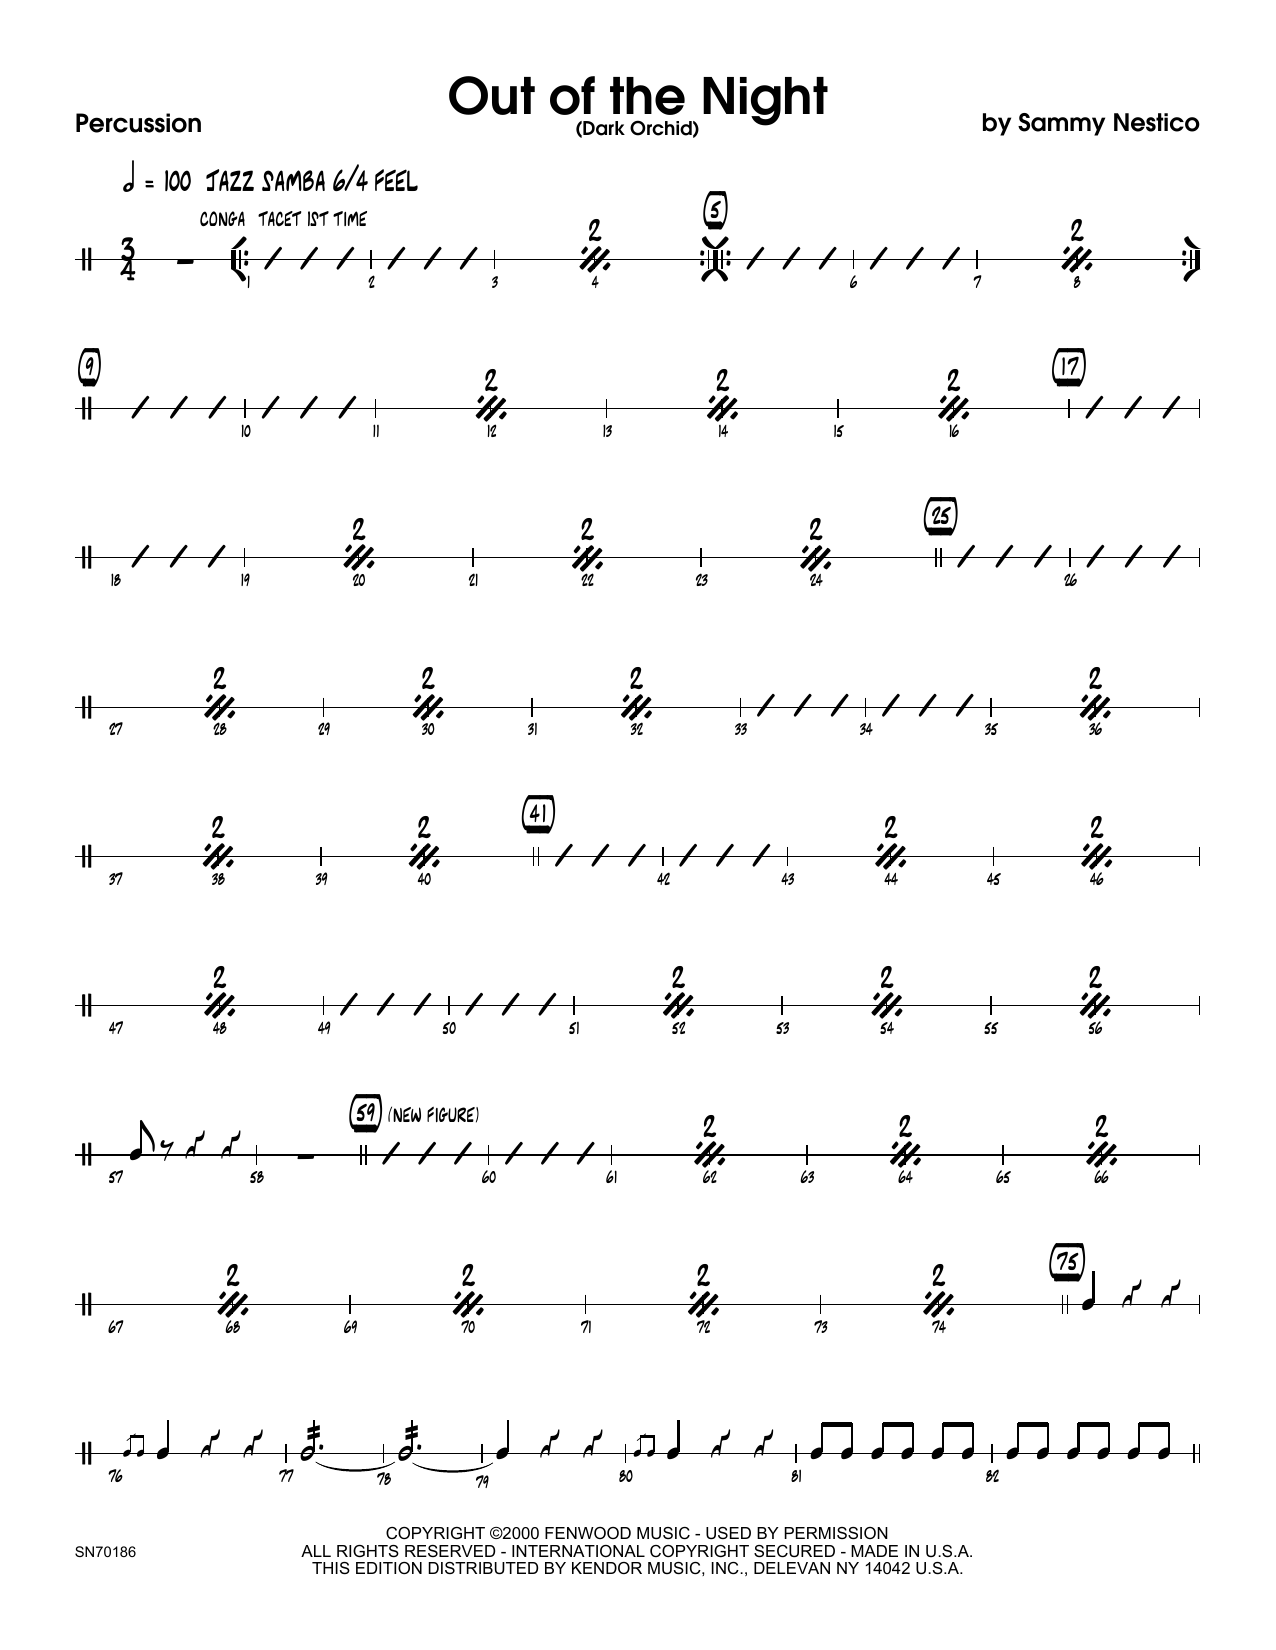 Out of the Night - Percussion Sheet Music